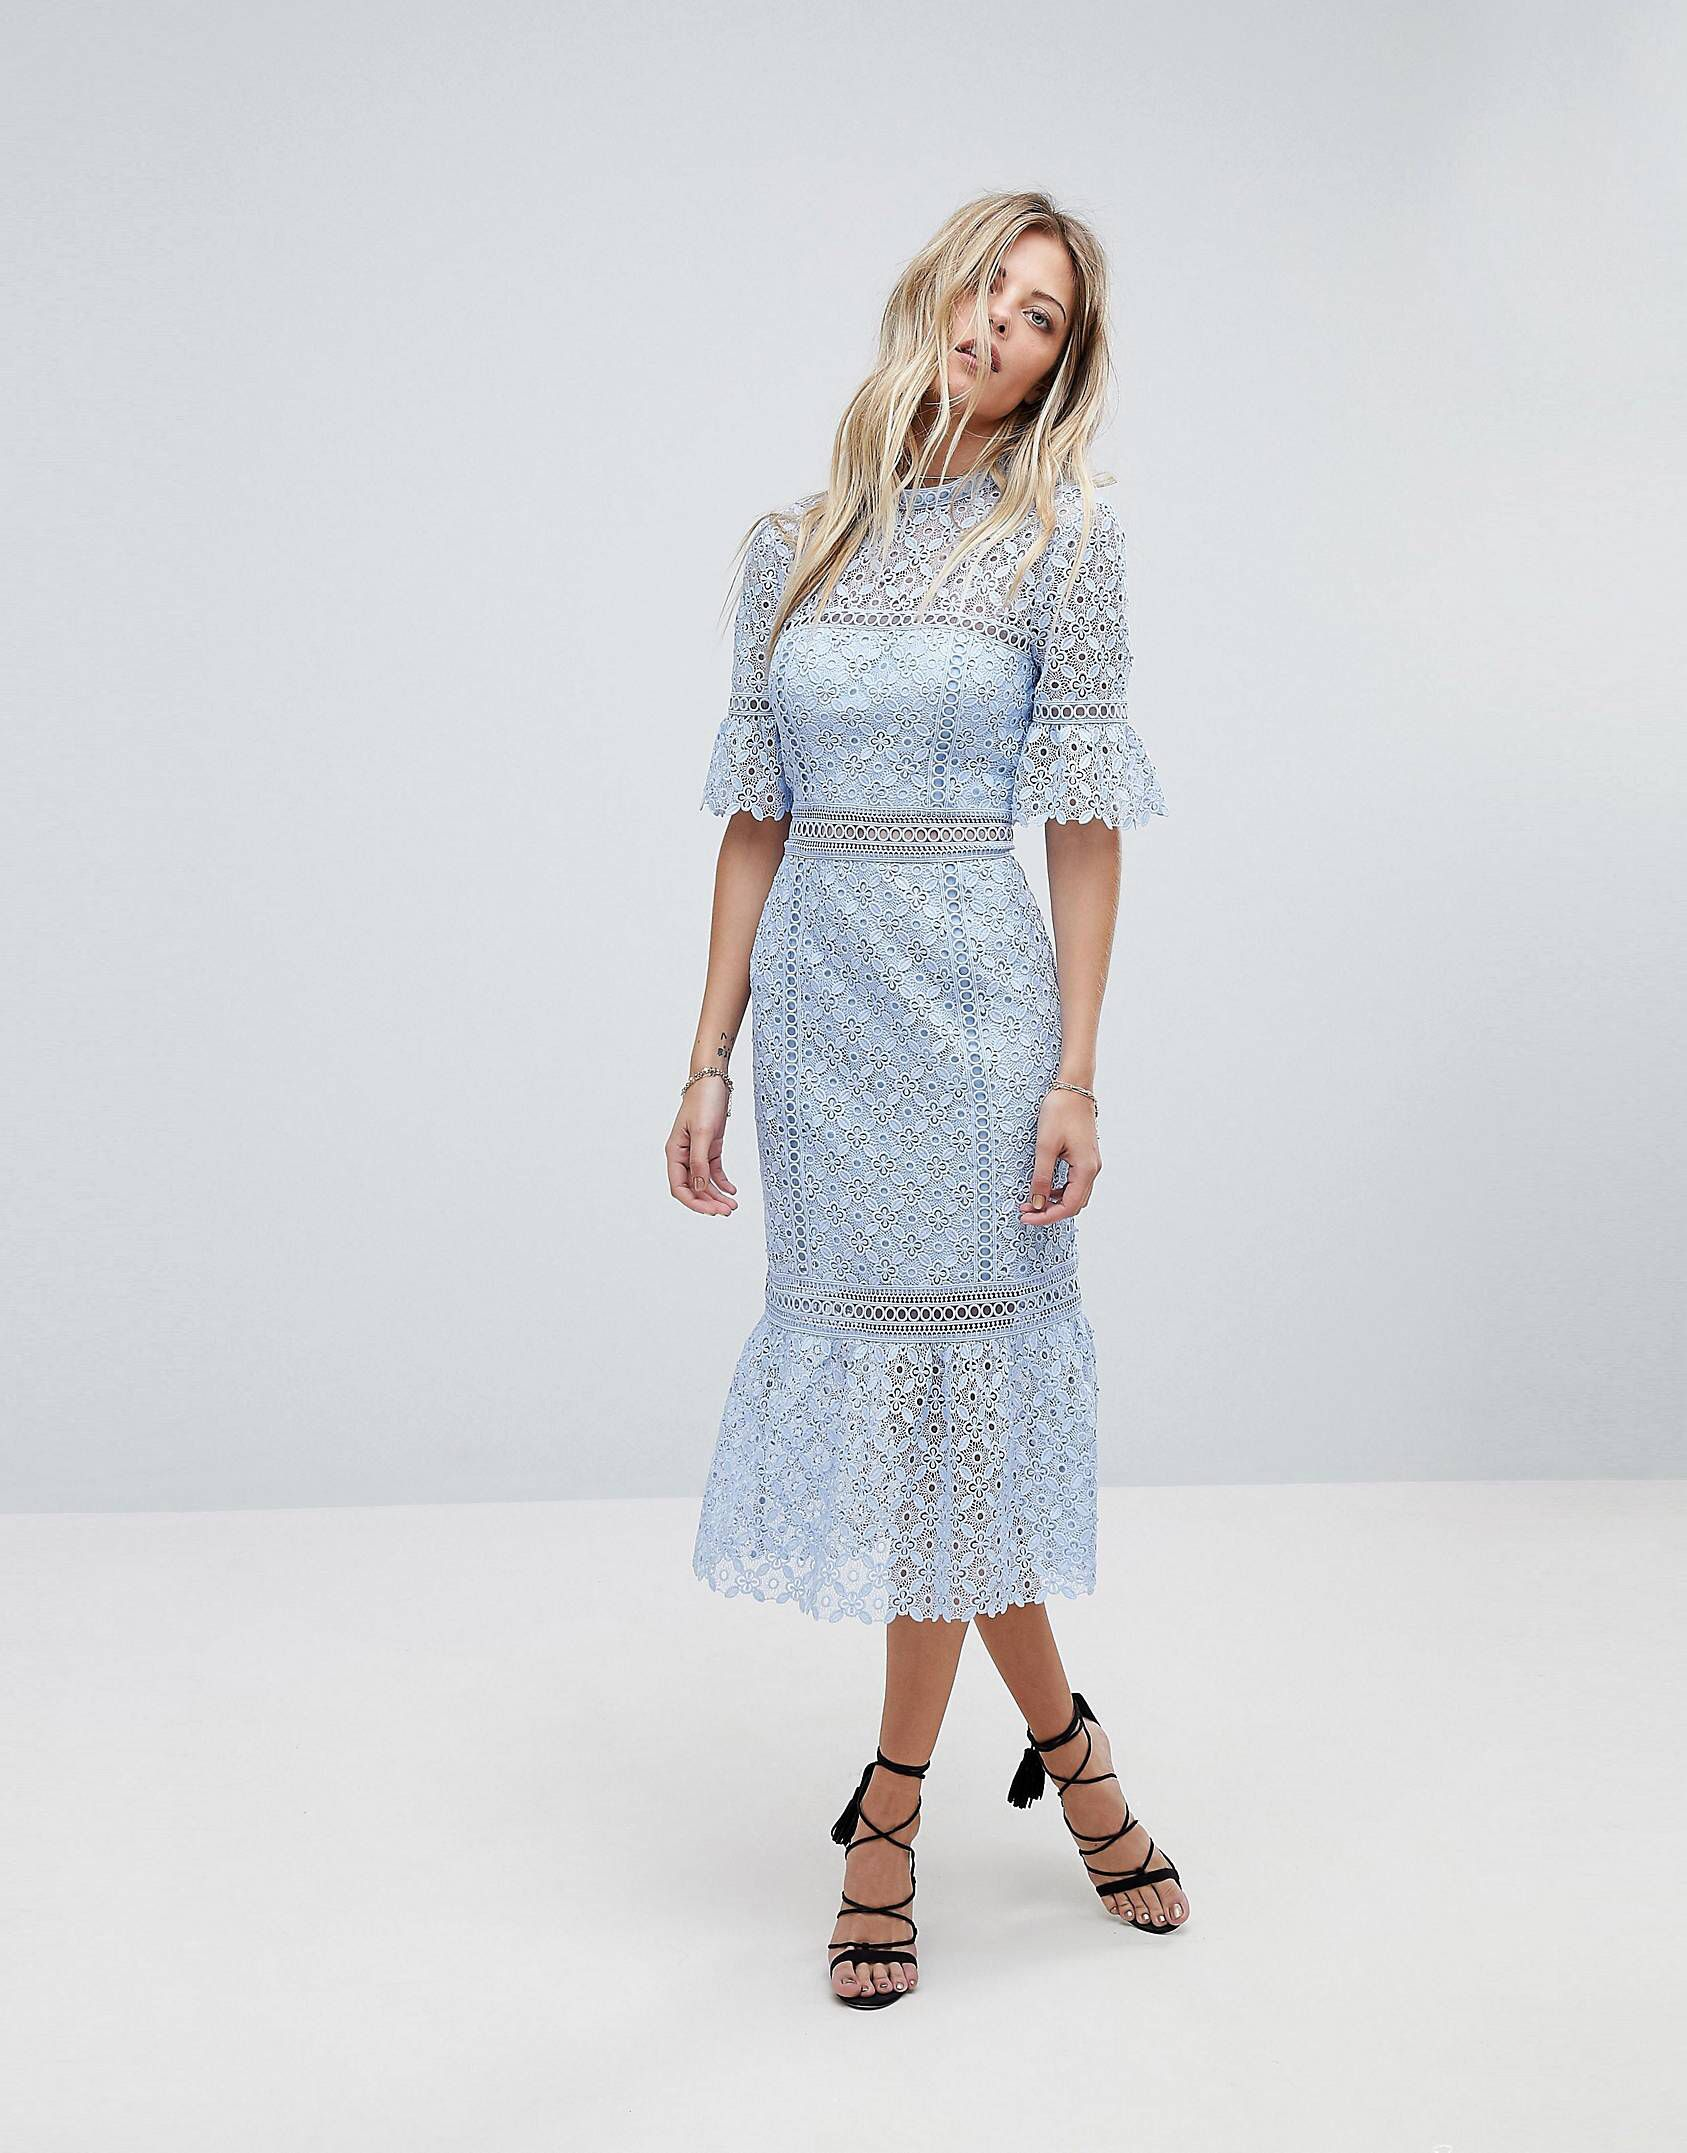 55bb4abeb LOVE this from ASOS!